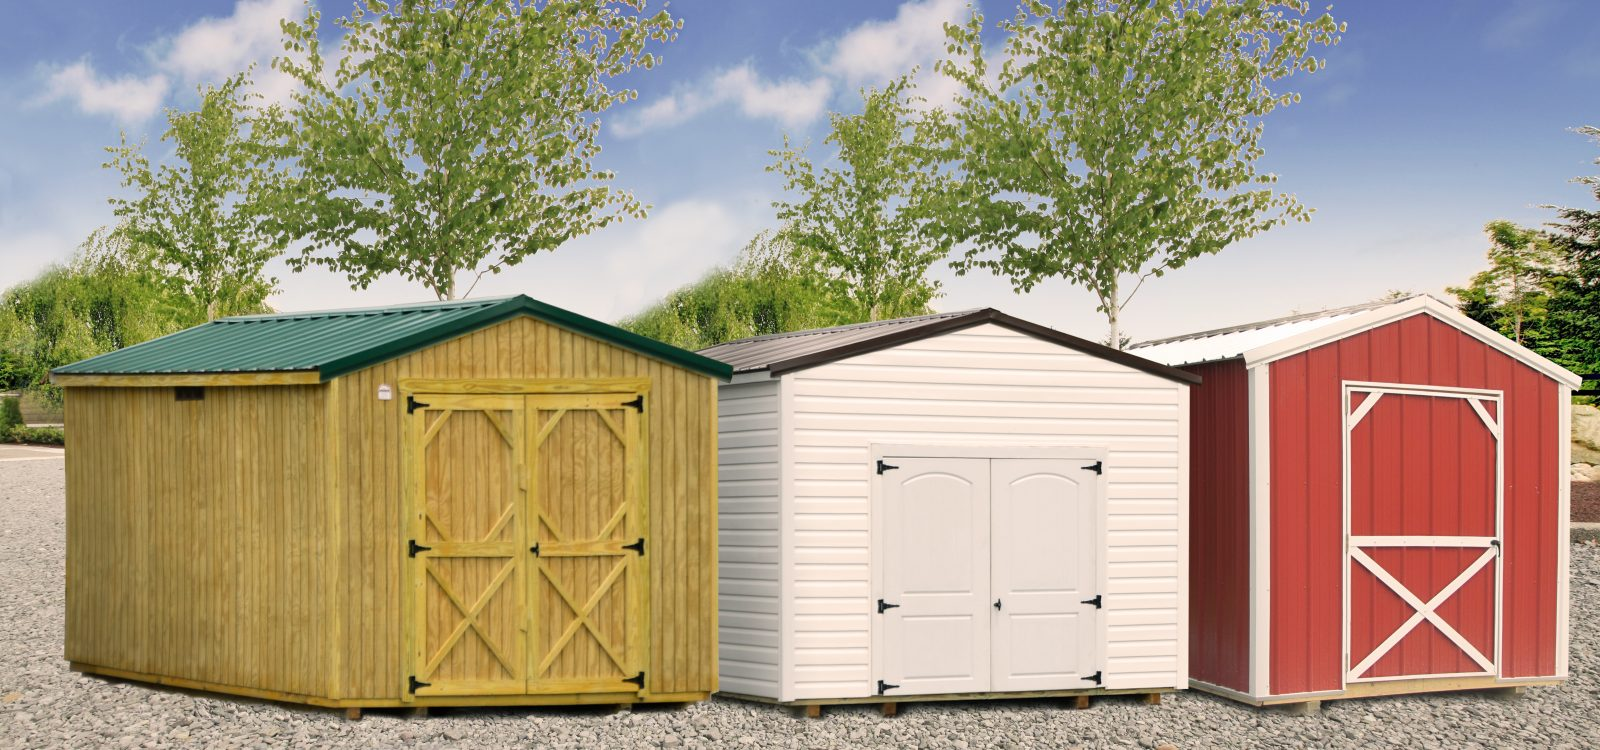 Awesome Storage Sheds For Sale in VA, KY, TN OH [2019 Models]